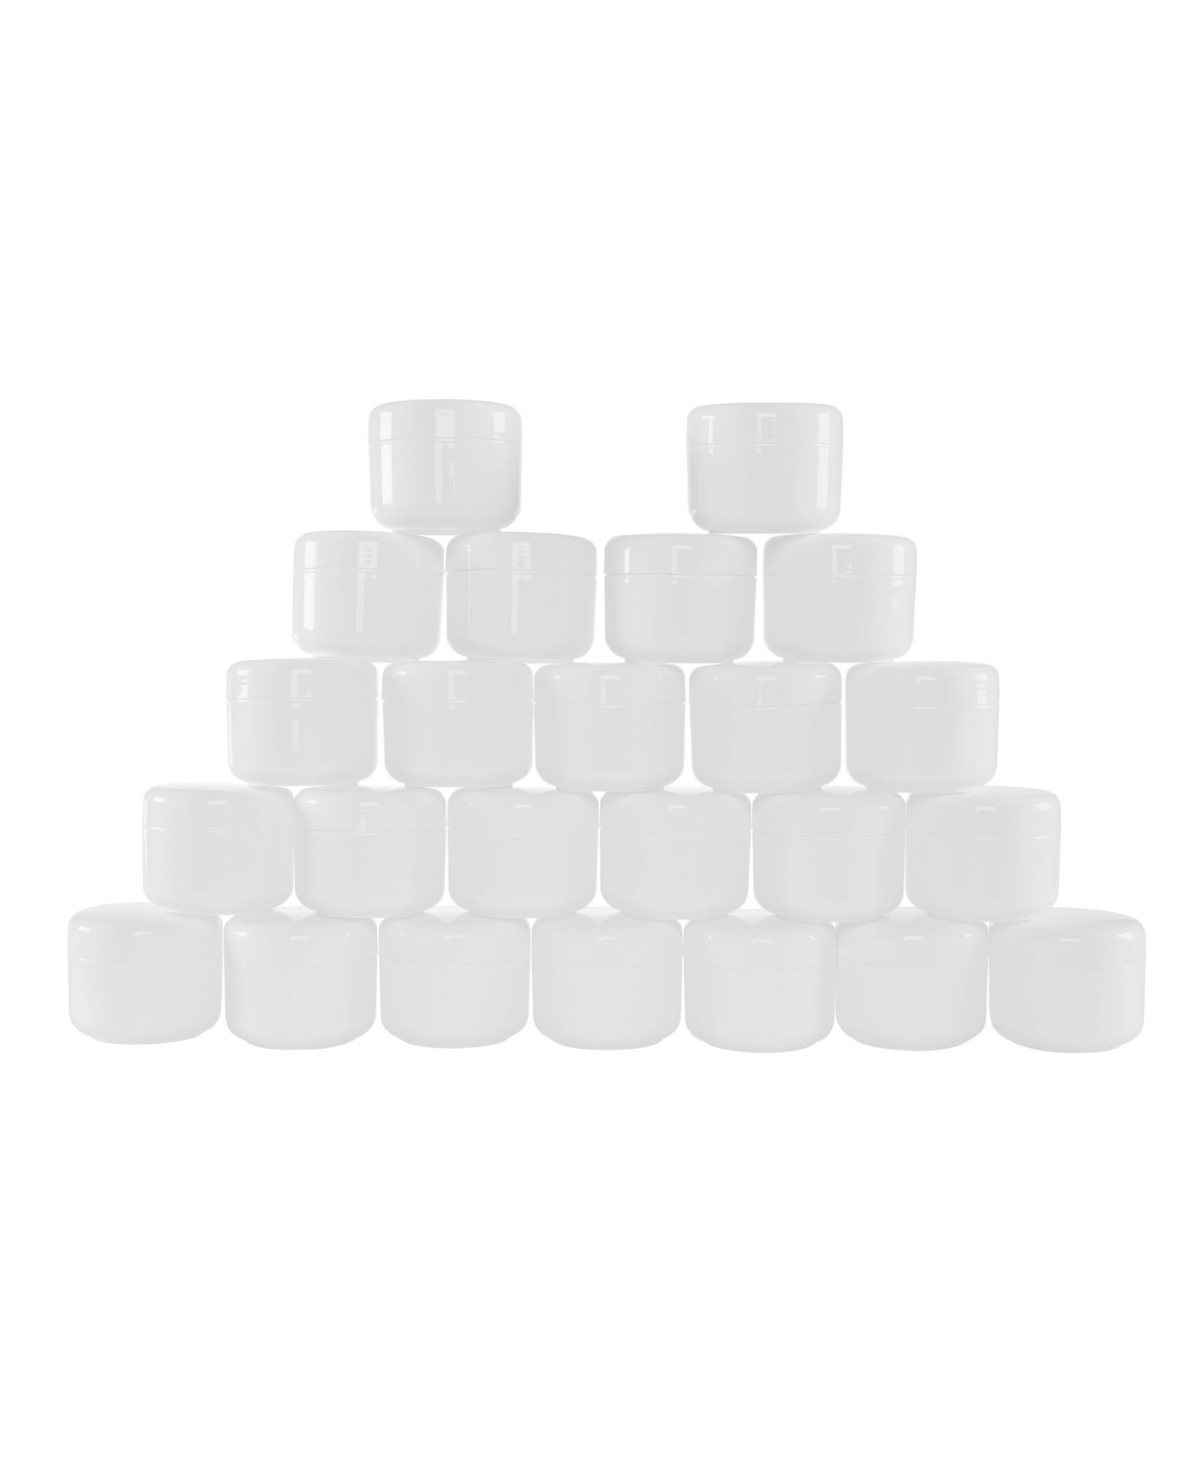 Trademark Global 2 Ounce Plastic Jar Containers, 24 Pack of Storage Jars with Inner and Outer Lid by Stalwart